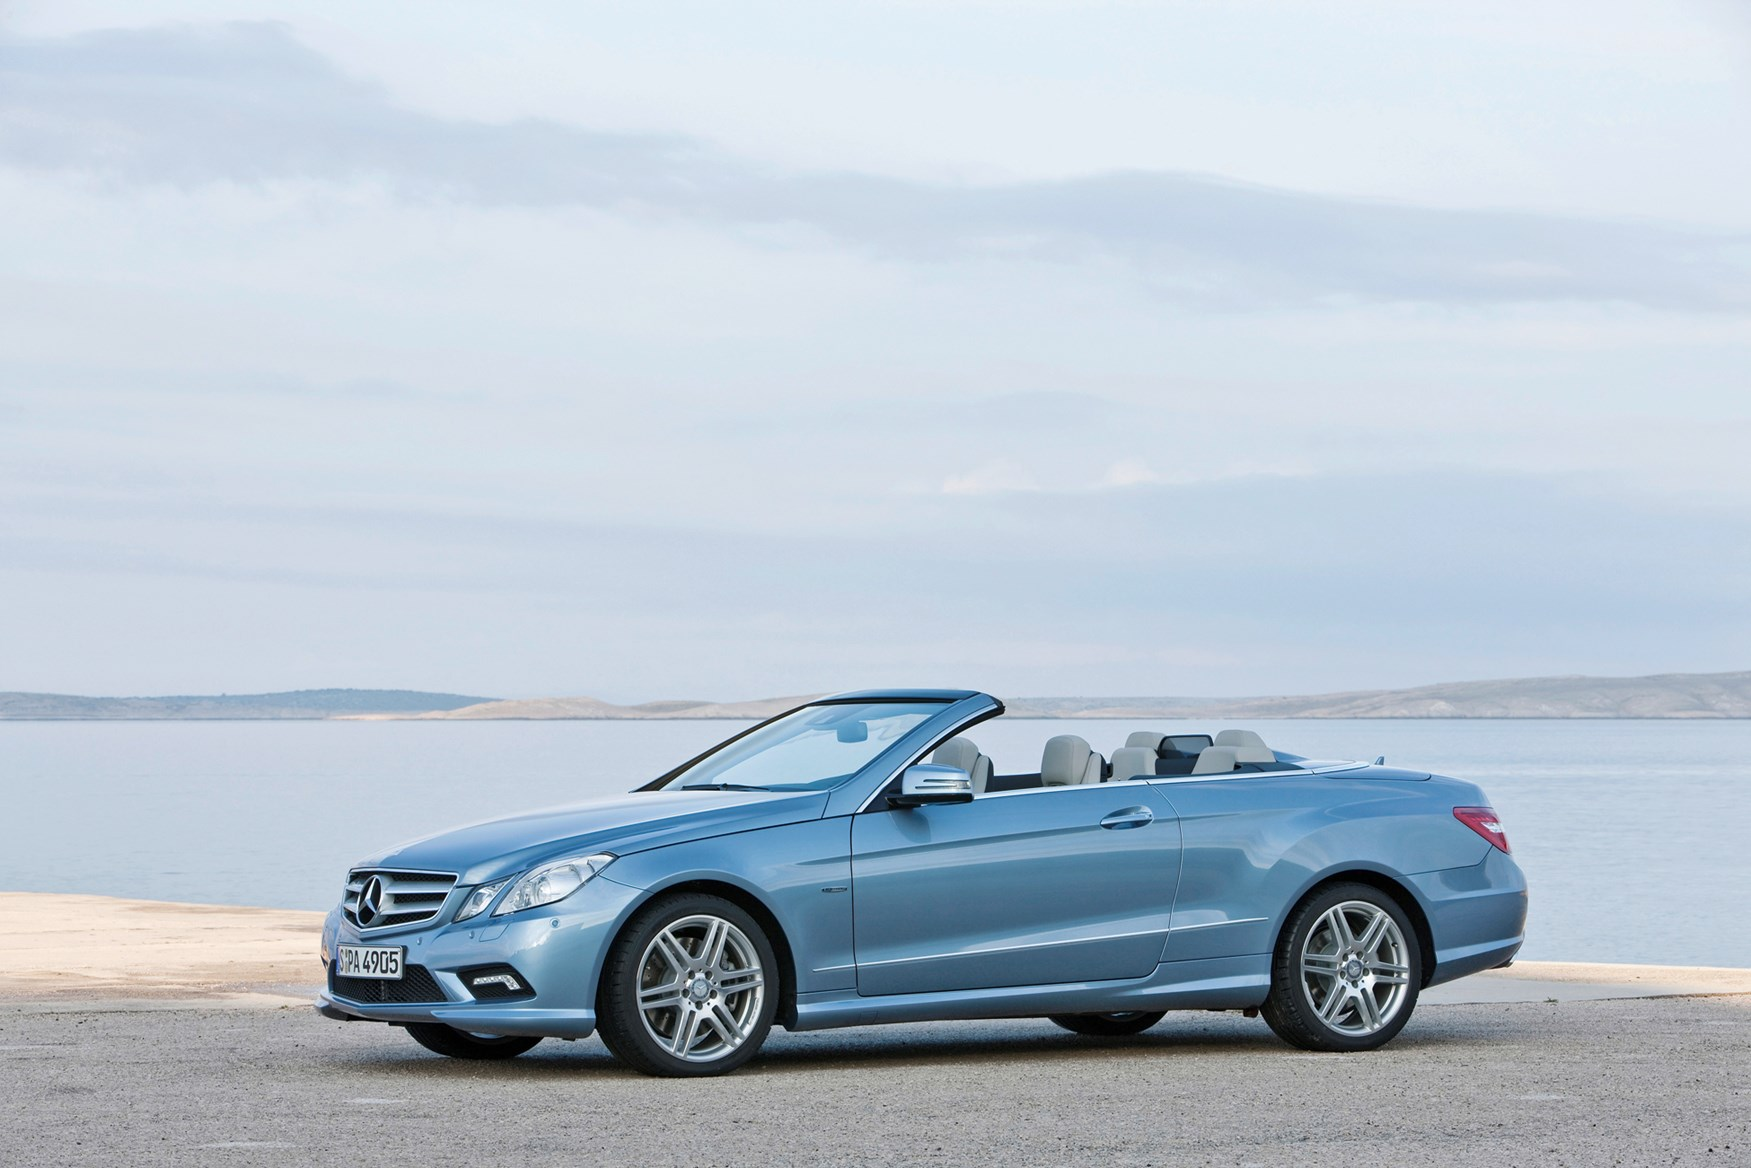 mercedes auto coupe piecha news tuning class benz design releases kit e convertible and for